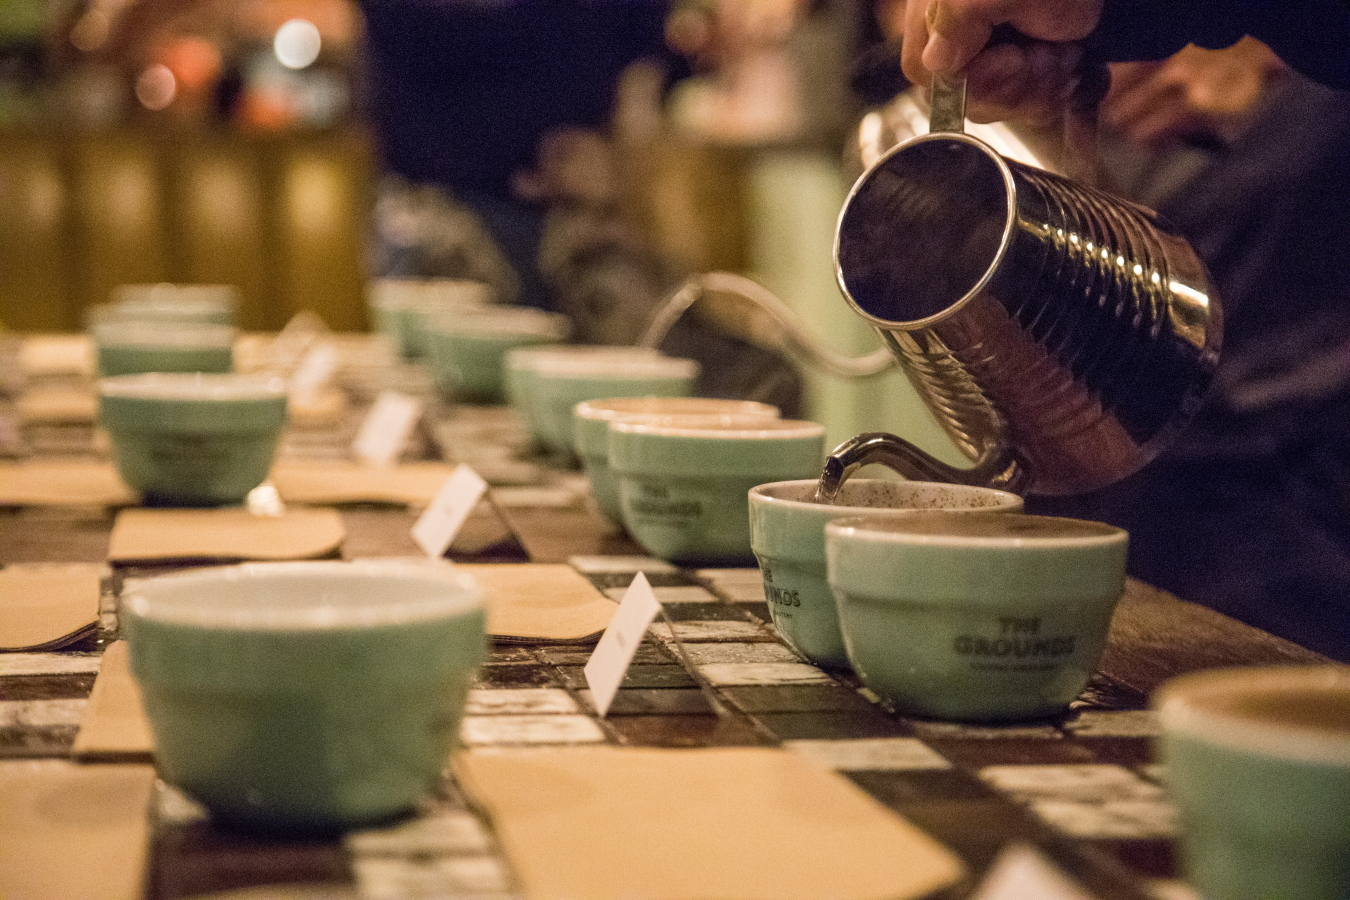 grounds cupping28byo.JPG